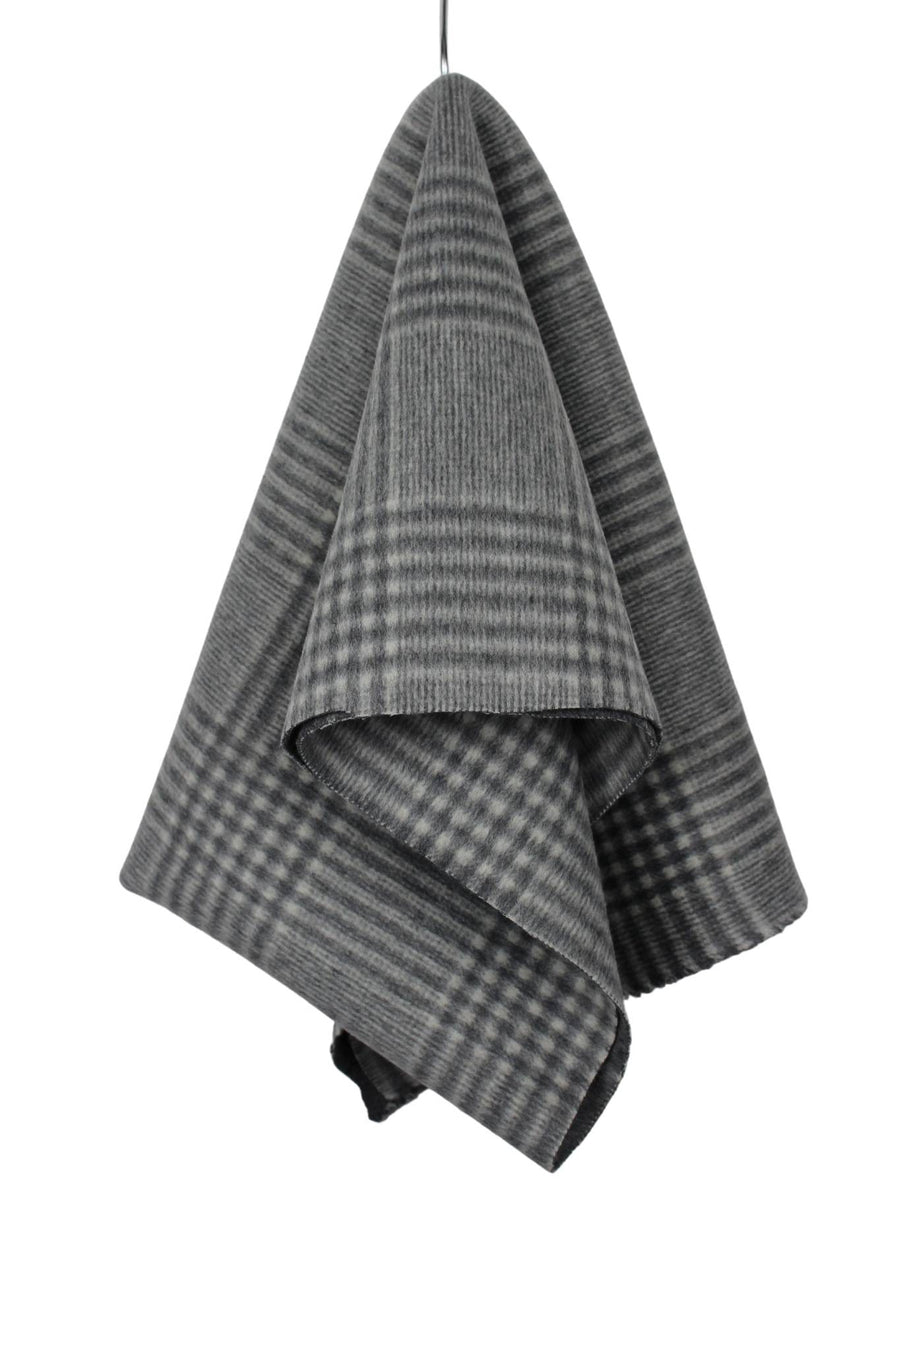 T8053 - Double Face Wool Plaid